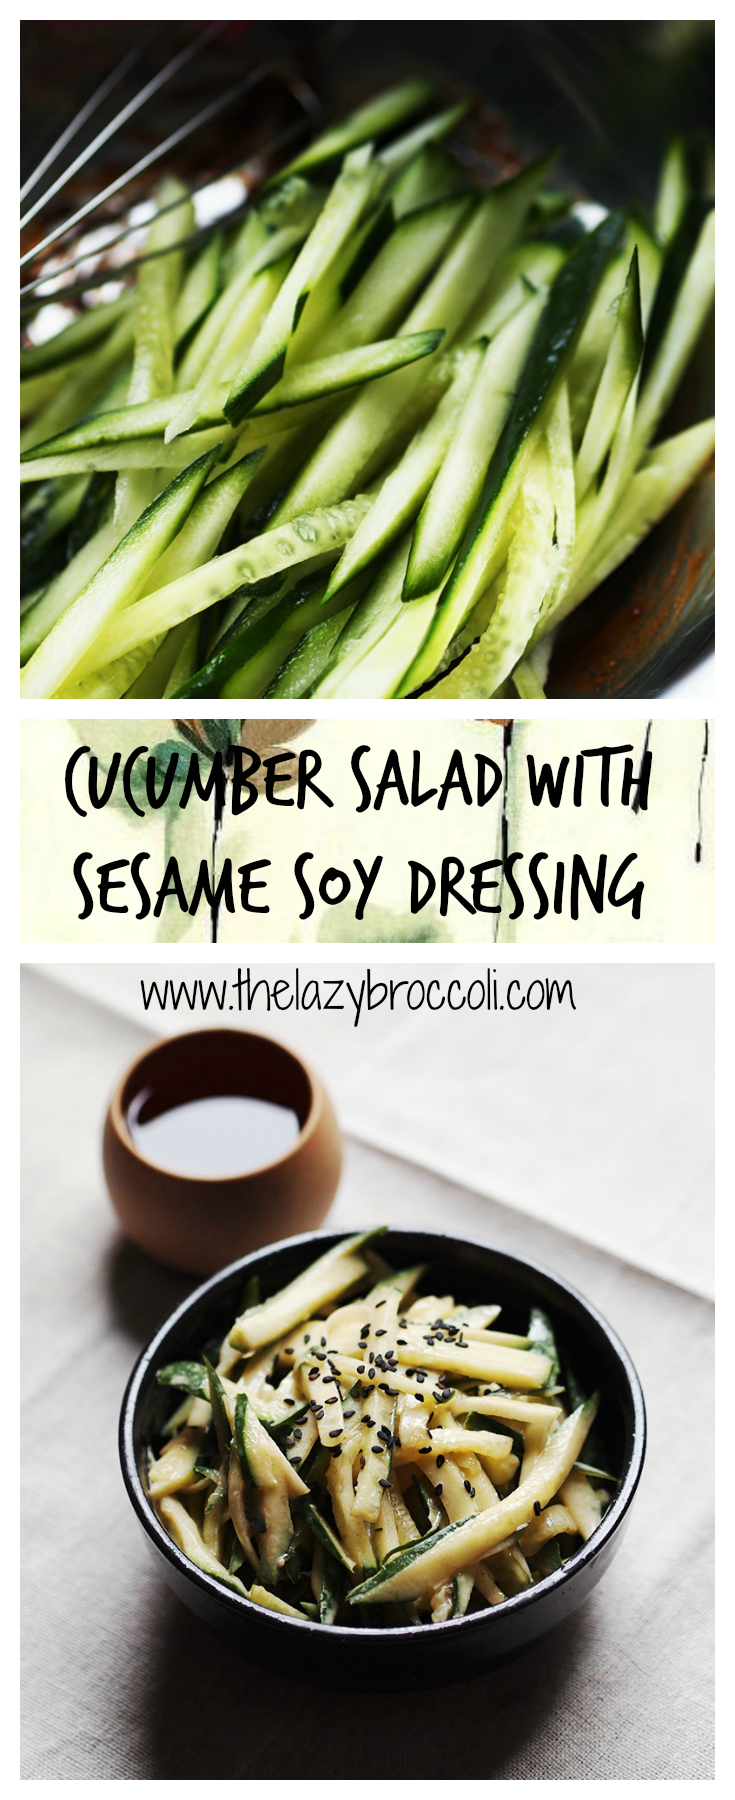 This 3 ingredients cucumber salad is not just refreshing - it is also easy and fast to make! #cucumber #salad #vegan #vegetarian #raw #noonionnogarlic #lowcarb #glutenfree #asian #chinese #noonionnogarlic #recipe #thelazybroccoli